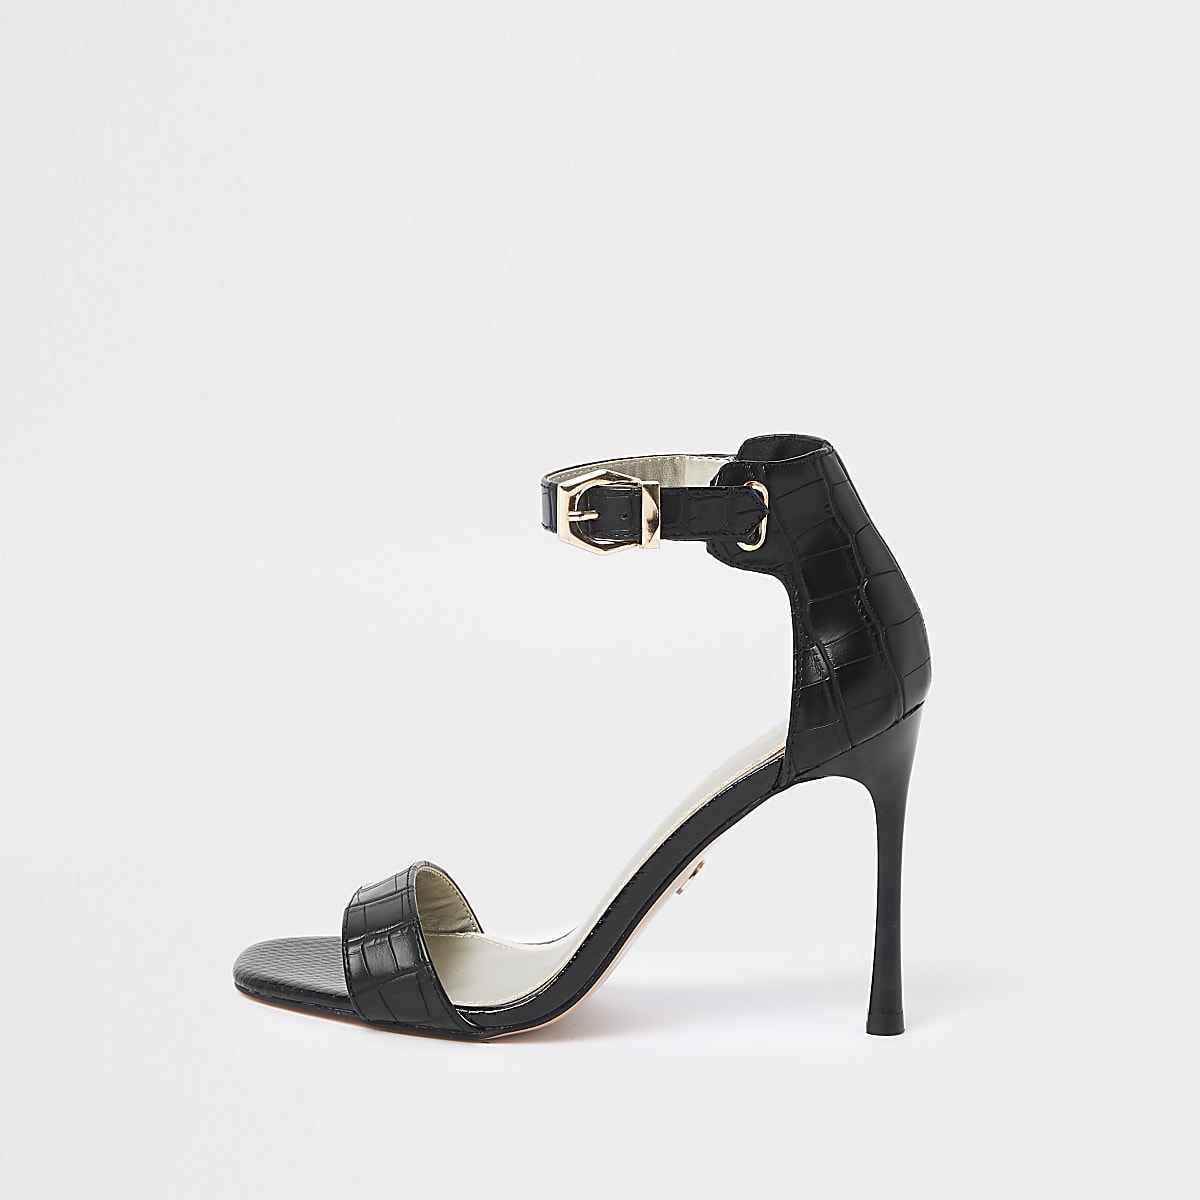 Black croc barely there sandals